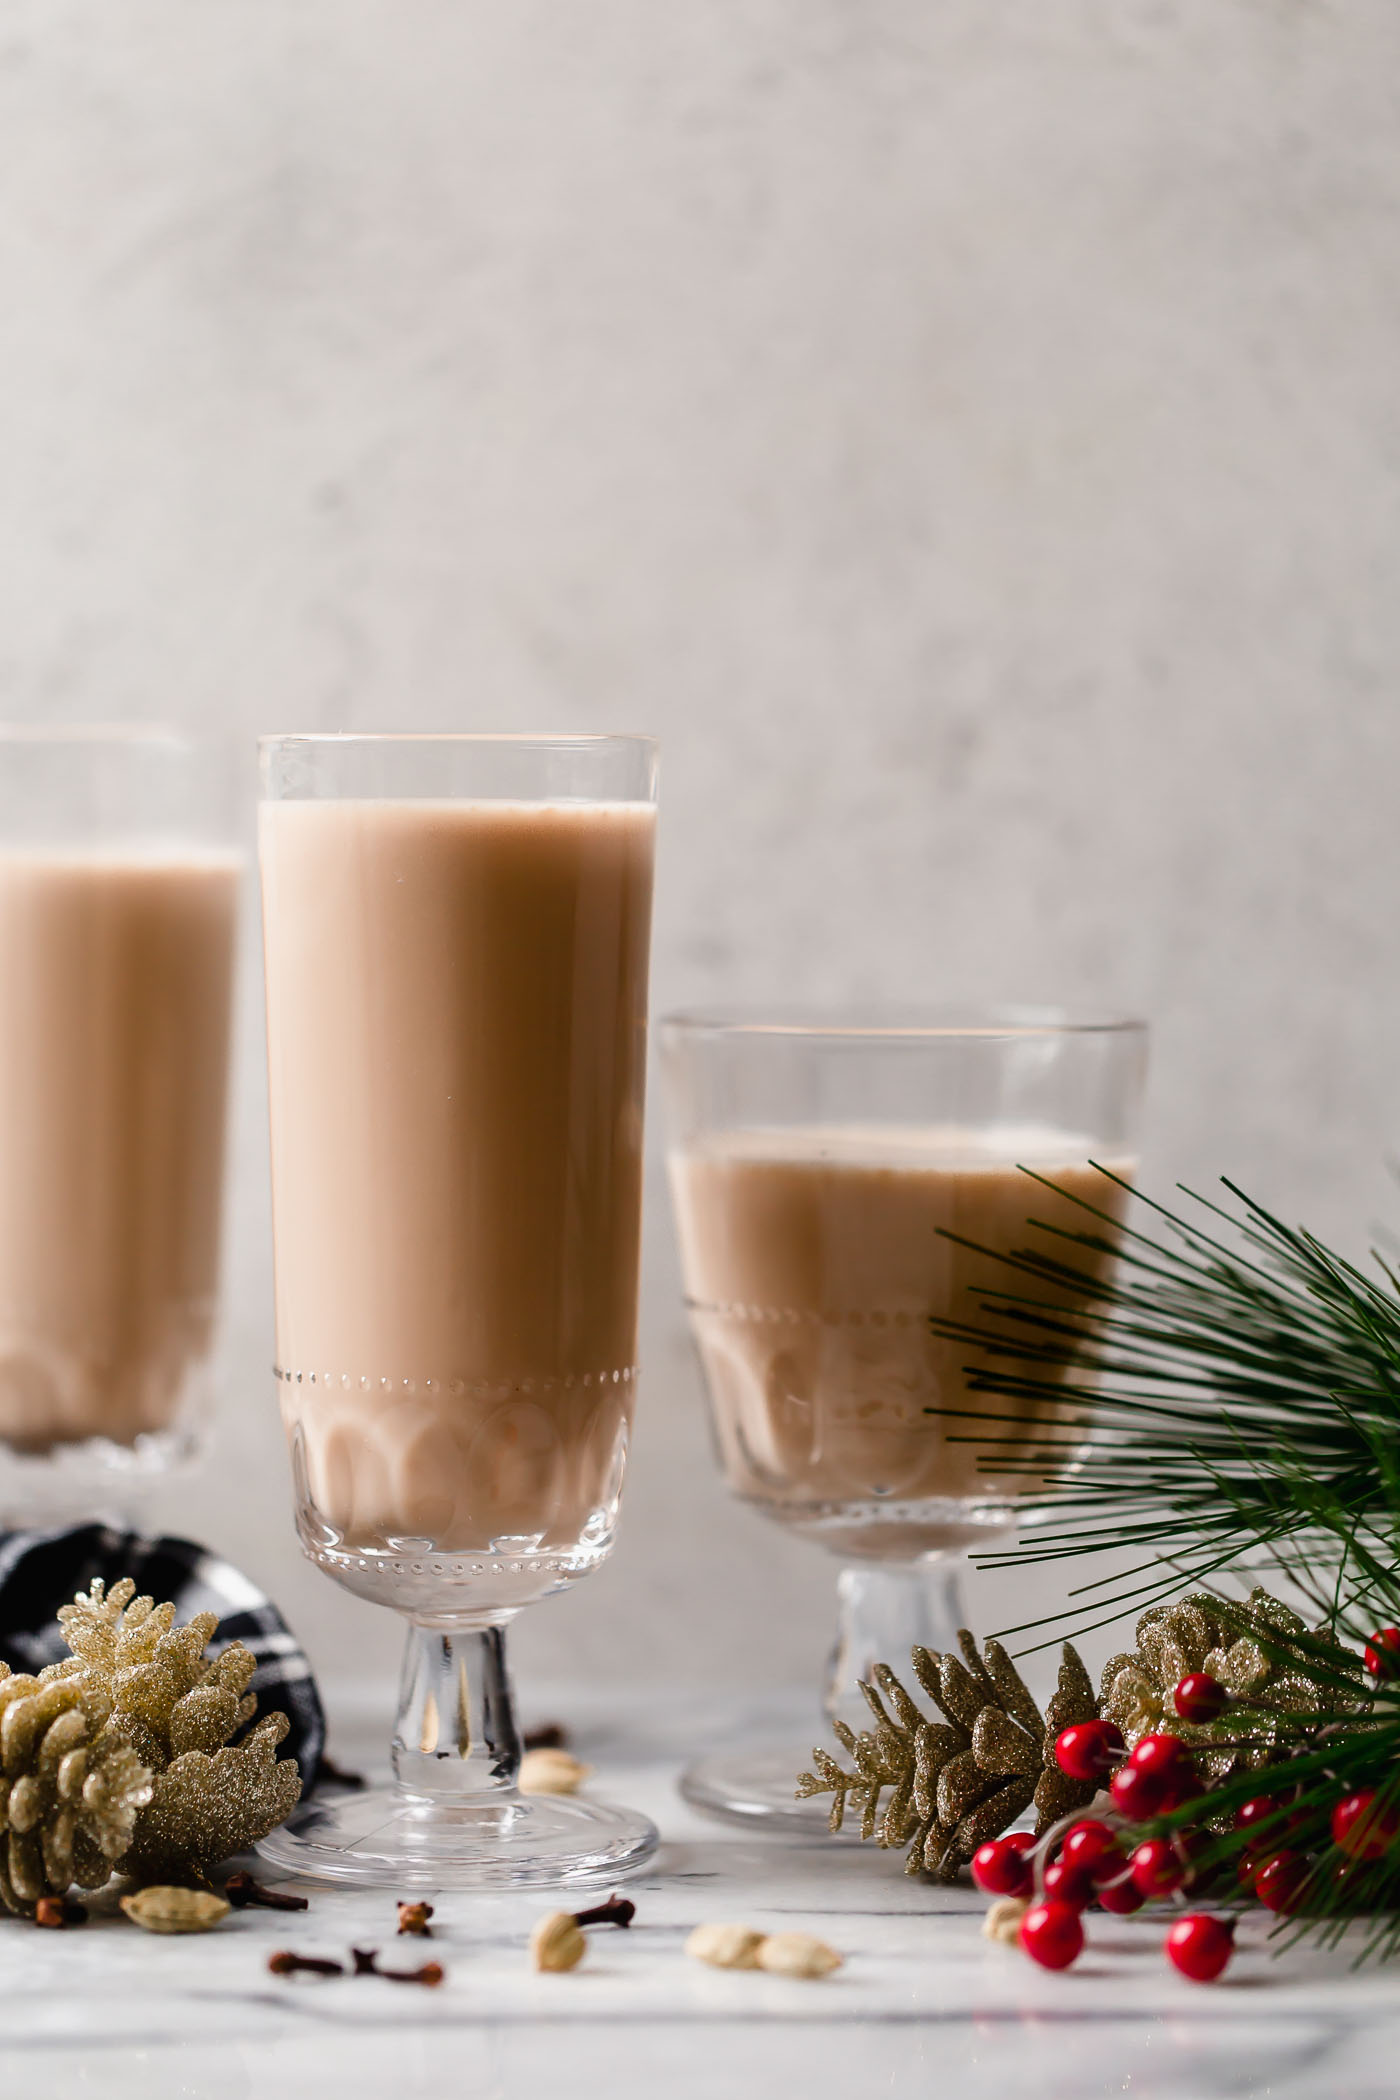 smoky spiked coconut chai tea latte. an easy spiked chai tea recipe! a coconut chai tea latte, lightly sweetened with maple syrup & spiked with mezcal & tequila. an easy & cozy boozy chai tea that's perfect to warm up on a cold winter night during the holiday season. #playswellwithbutter #spikedchaitea #spikedchailatte #spikedchai #chaicocktail #coconutchai #easycocktailrecipes #fallcocktailrecipes #wintercocktailrecipes #holidaycocktailrecipes #christmascocktailrecipes #mezcalcocktails